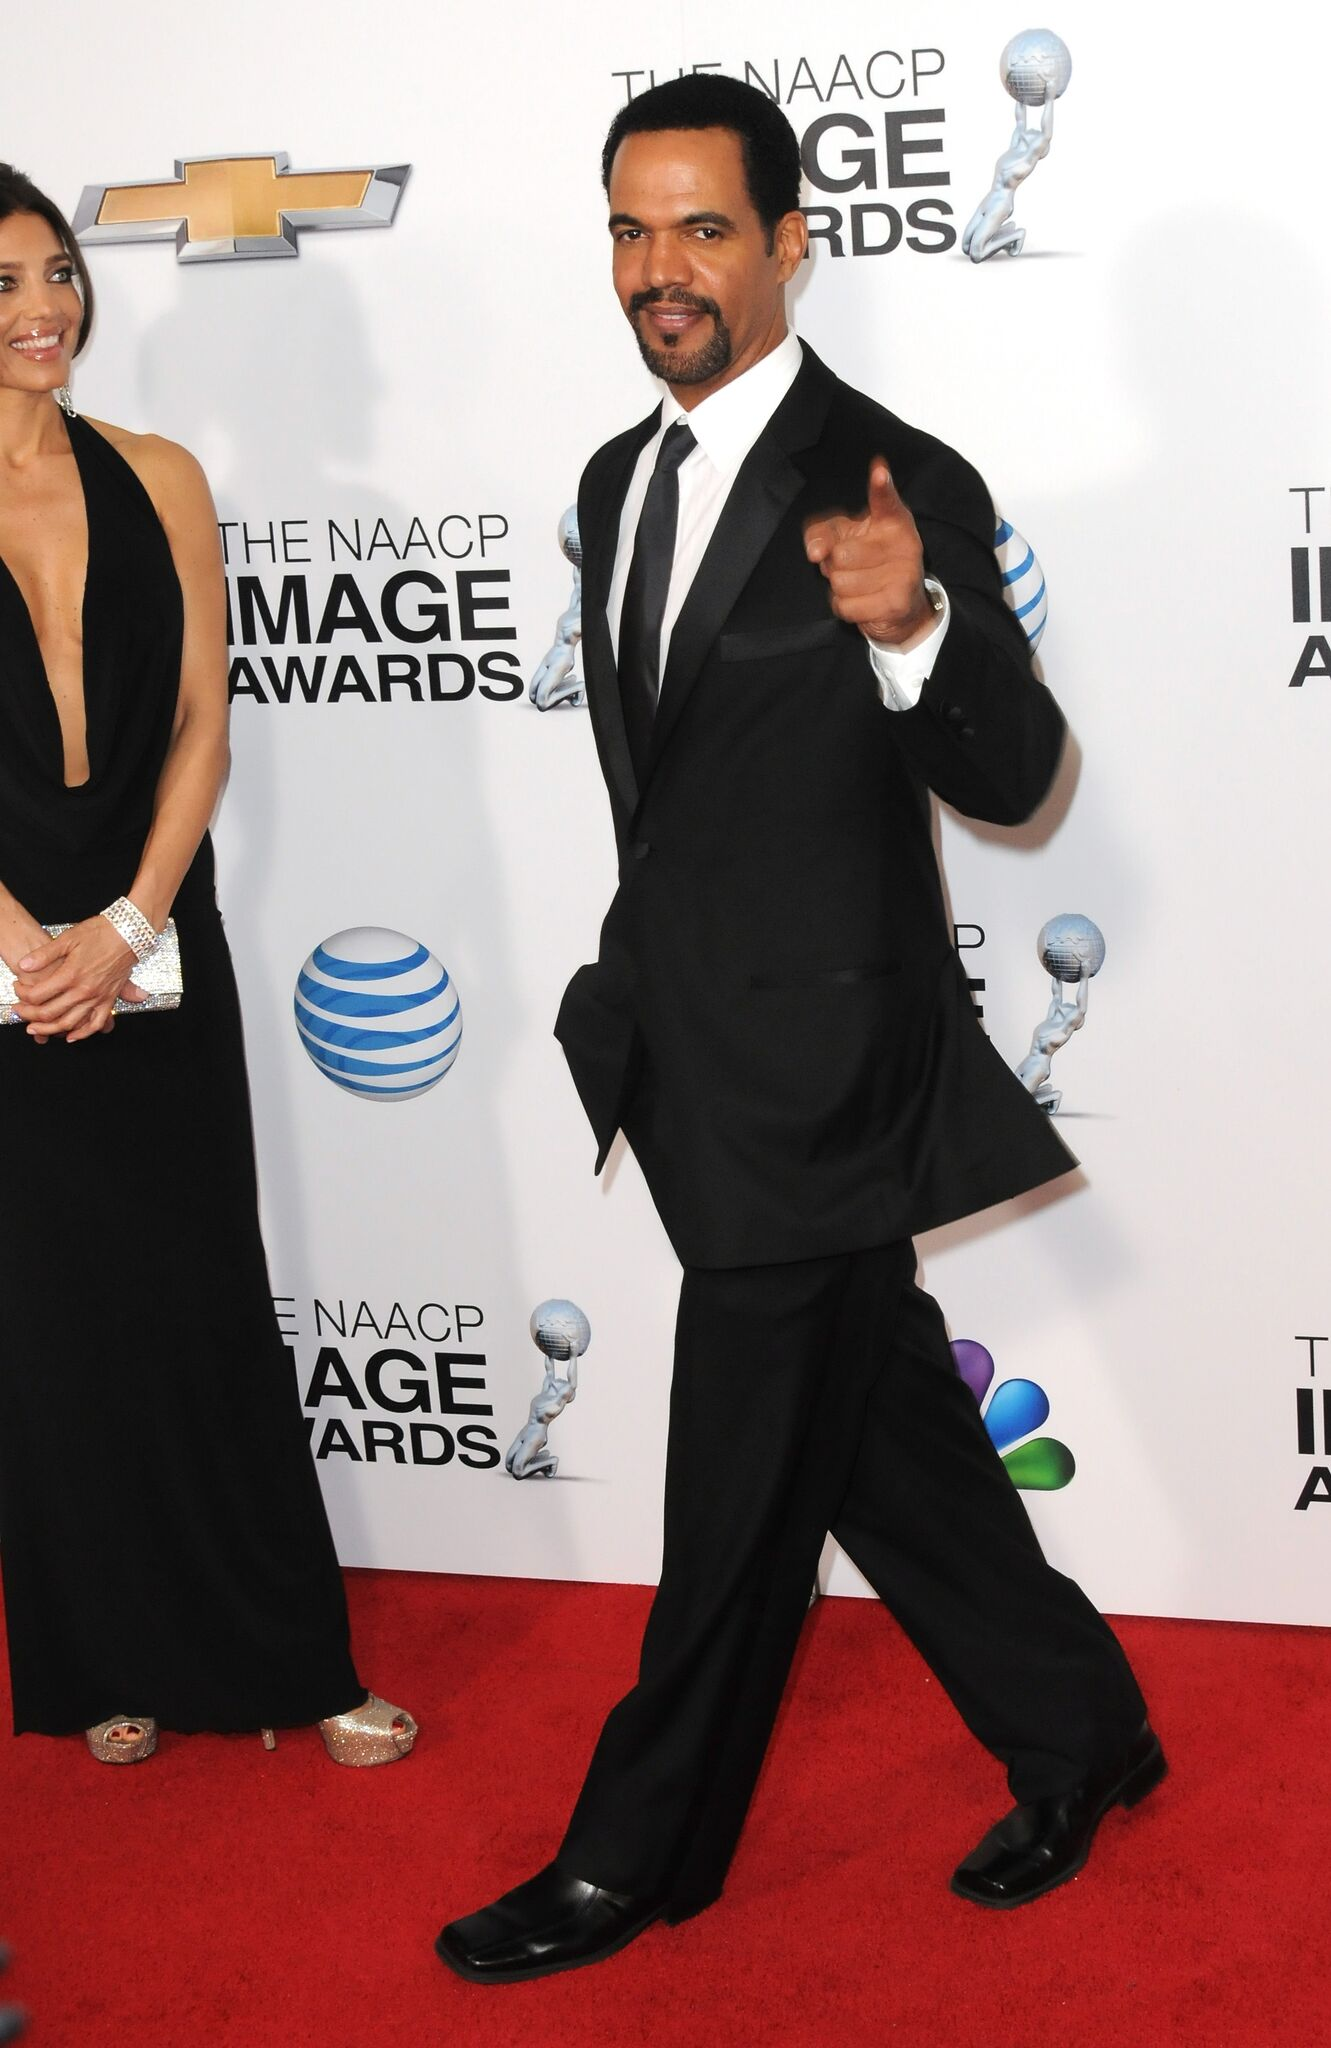 Actor Kristoff St. John arrives for the 44th NAACP Image Awards held at the Shrine Auditorium  | Getty Images